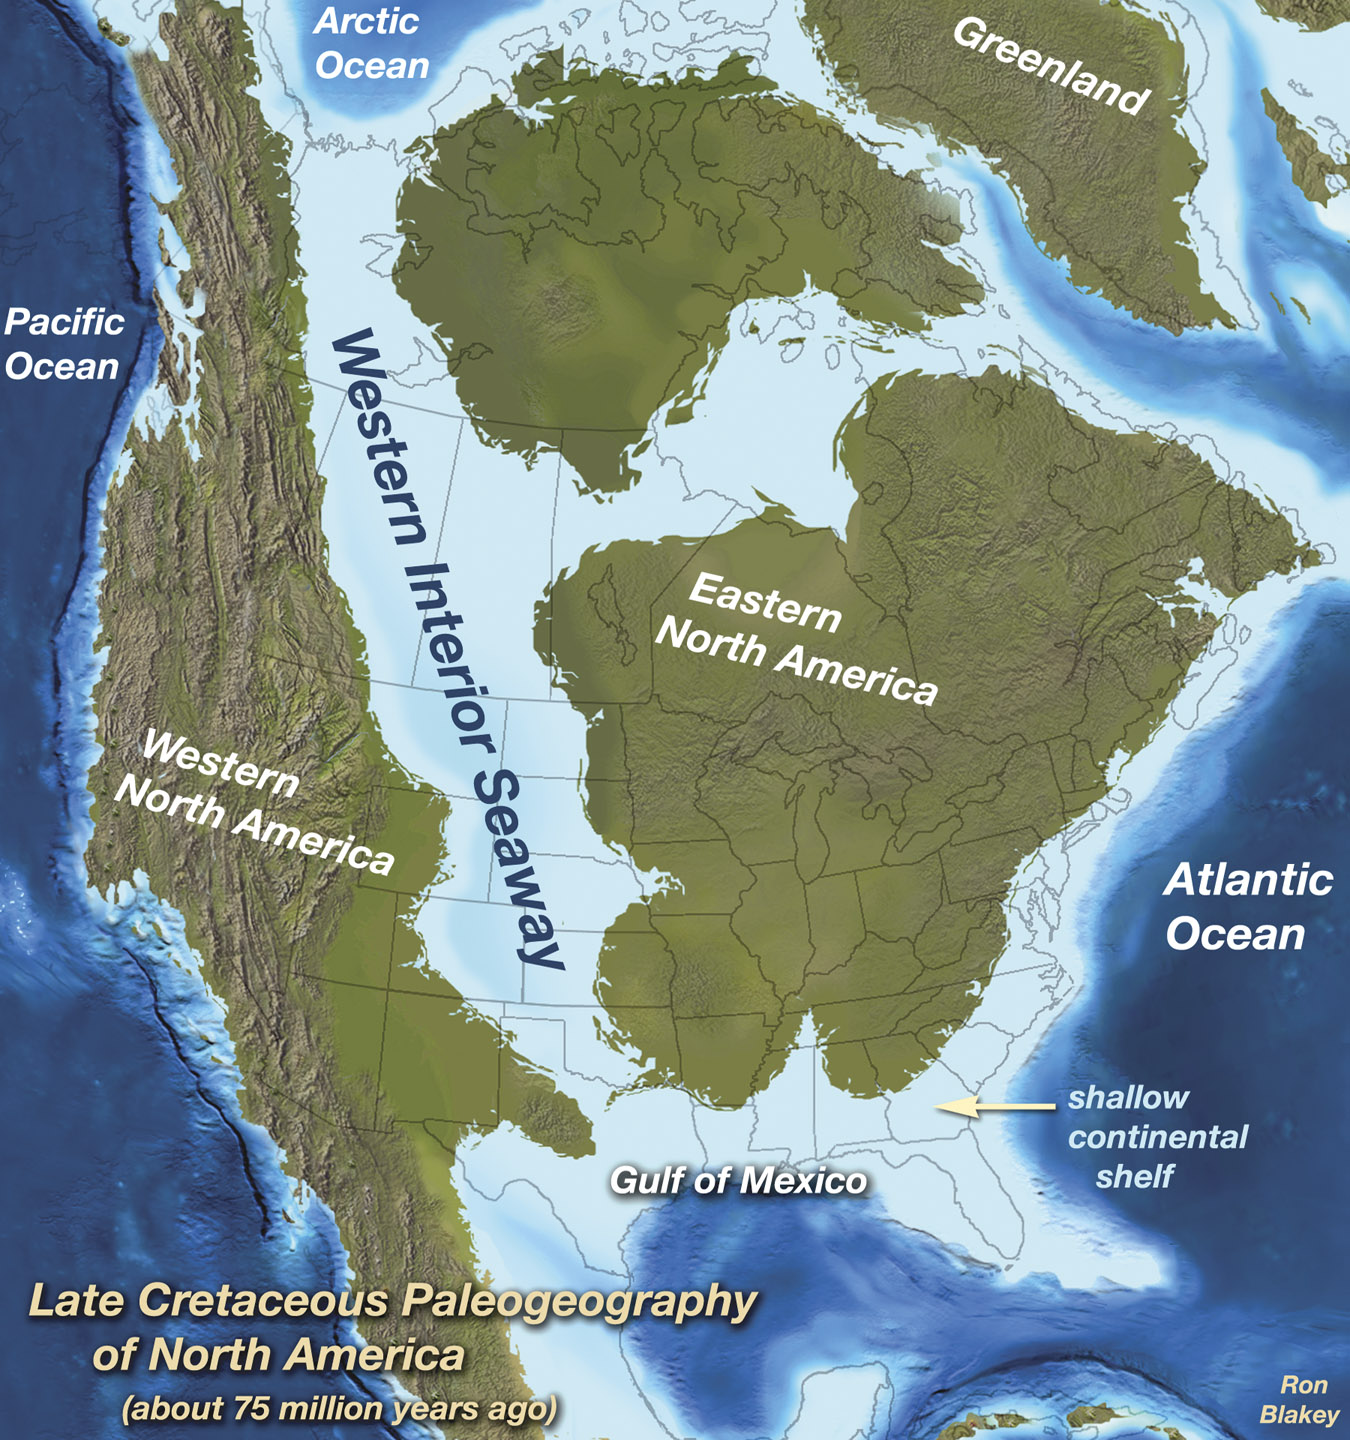 North America during the Cretaceous Period.